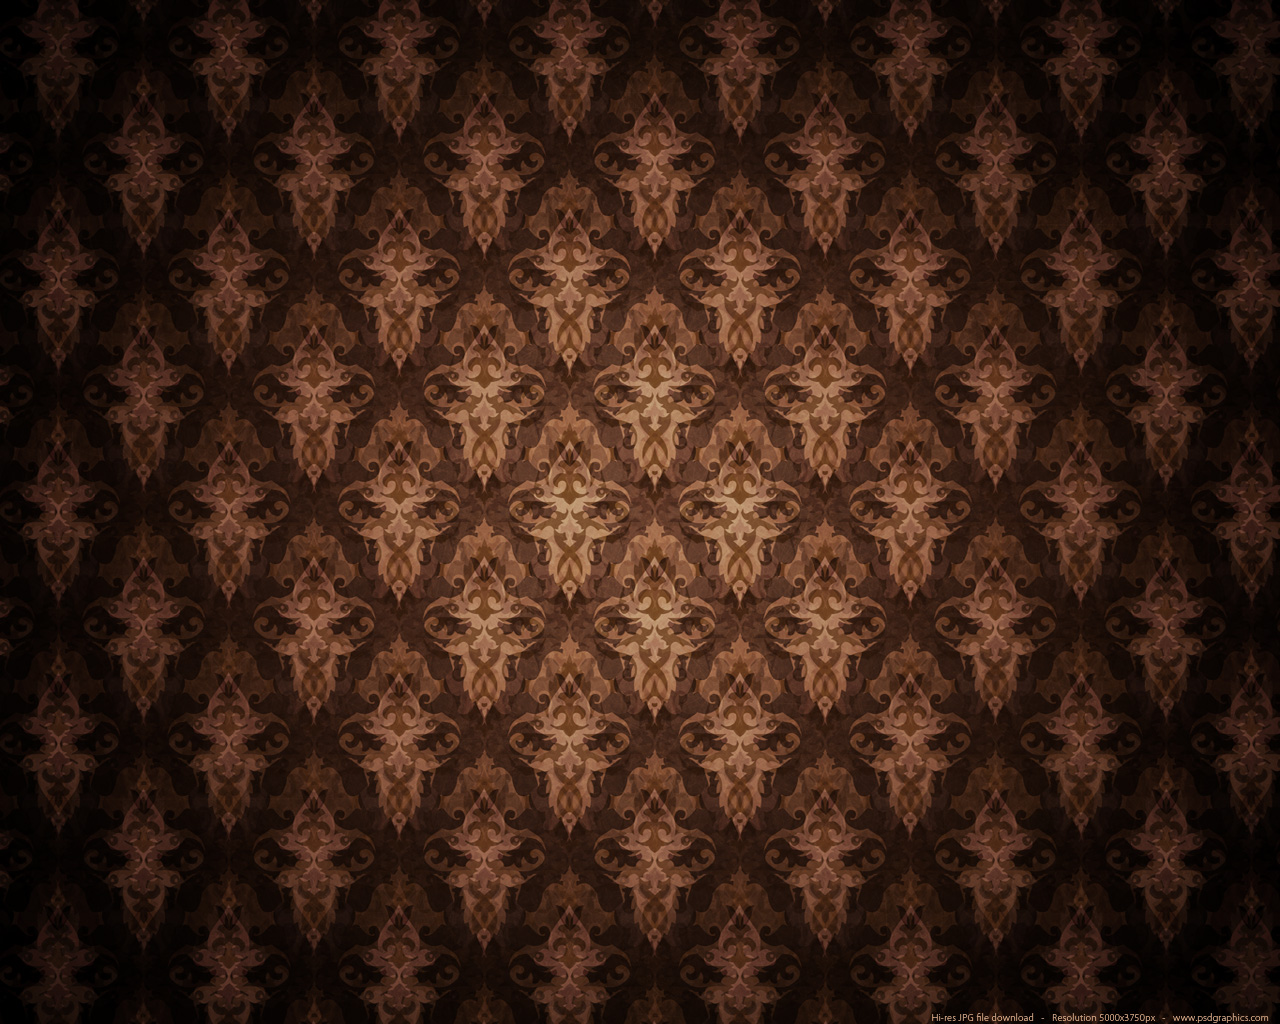 Medium size preview 1280x1024px Brown antique background 1280x1024